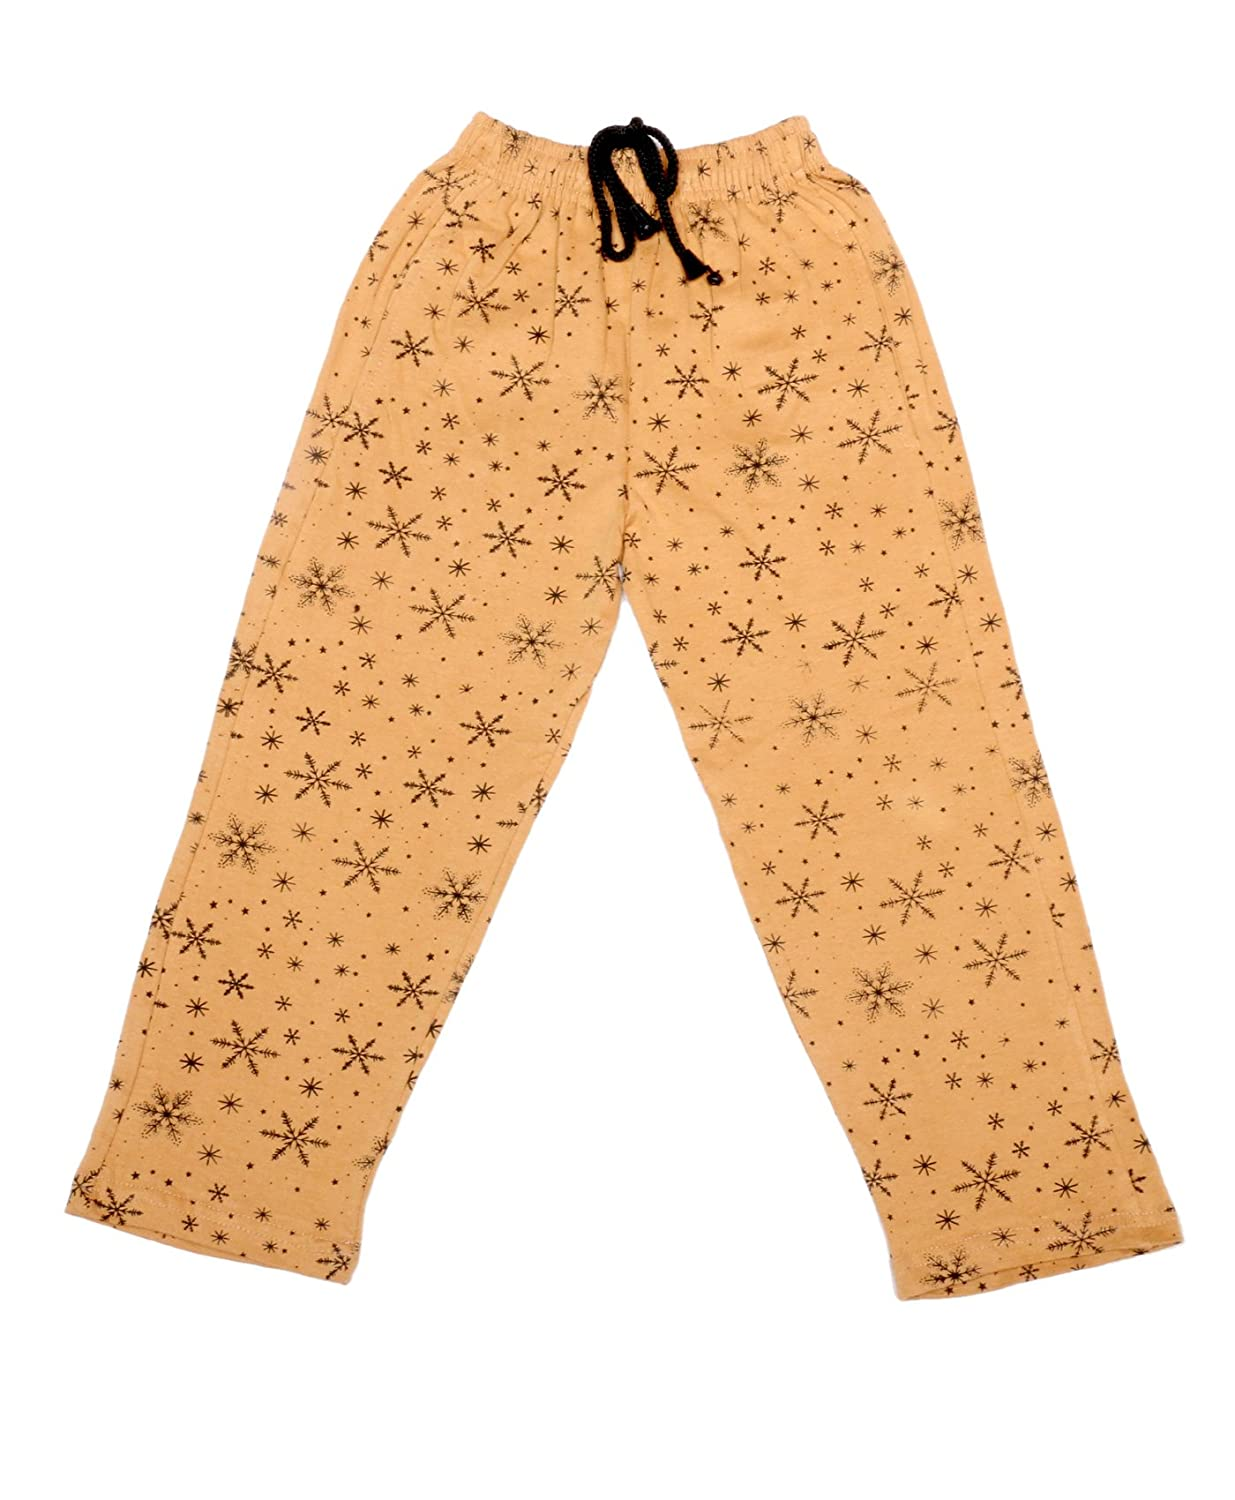 Pack of 2 IndiWeaves Girls Premium Cotton Full Length Lower//Track Pants//Pyjamas with 2 Open Pockets